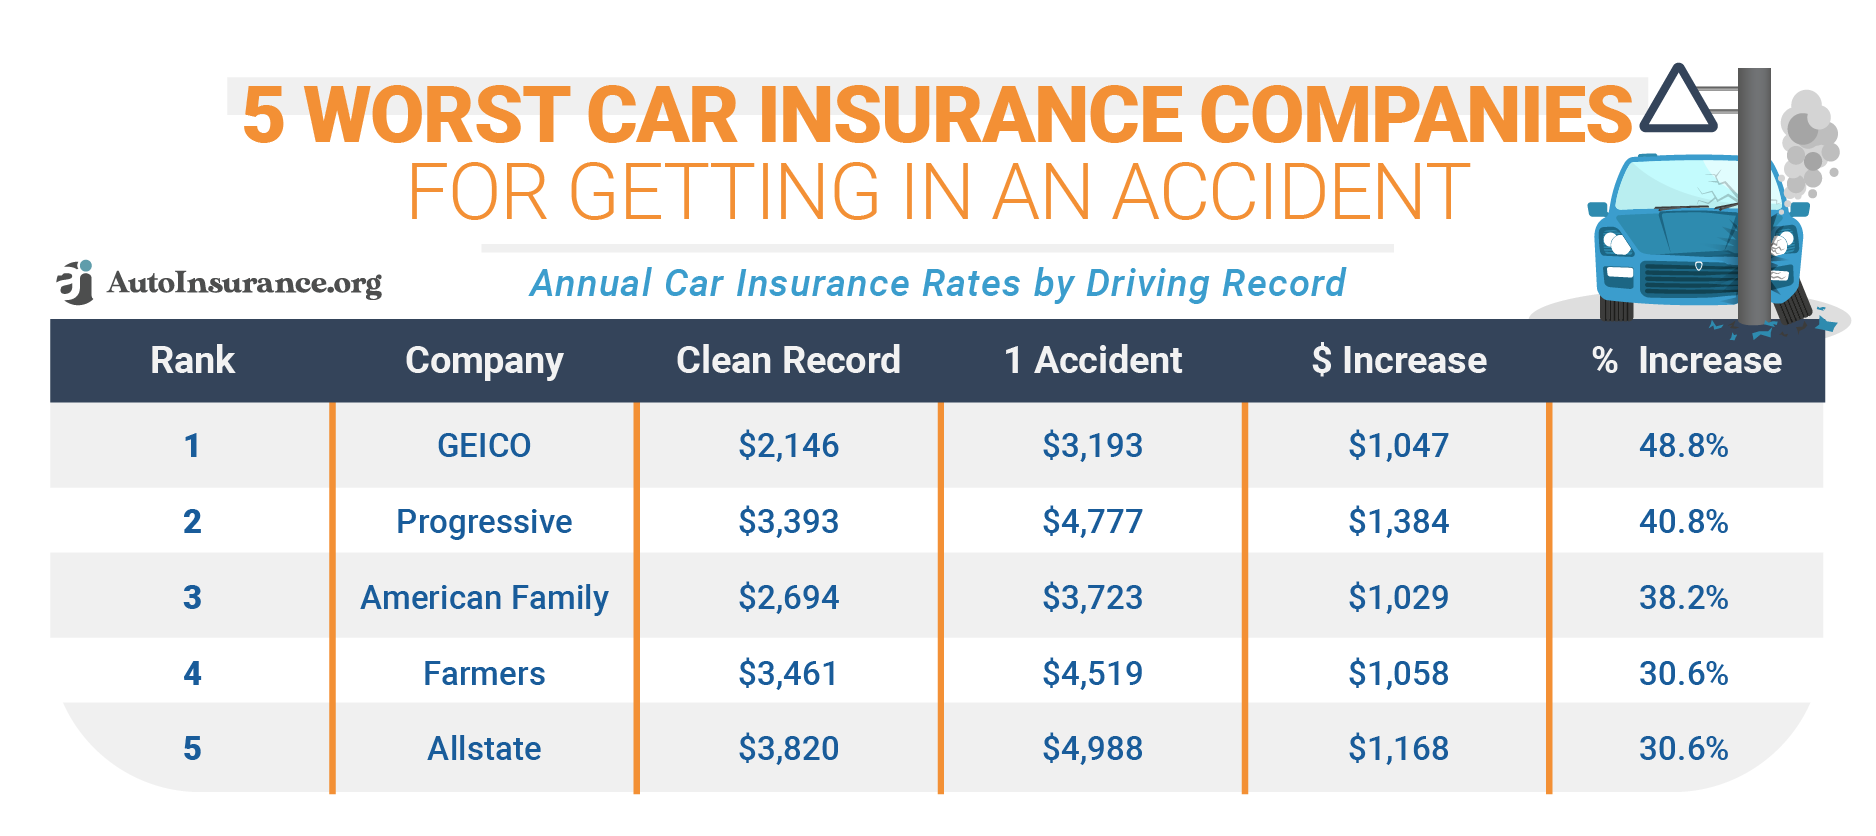 5 Worst Car Insurance Companies -for Getting in an Accident